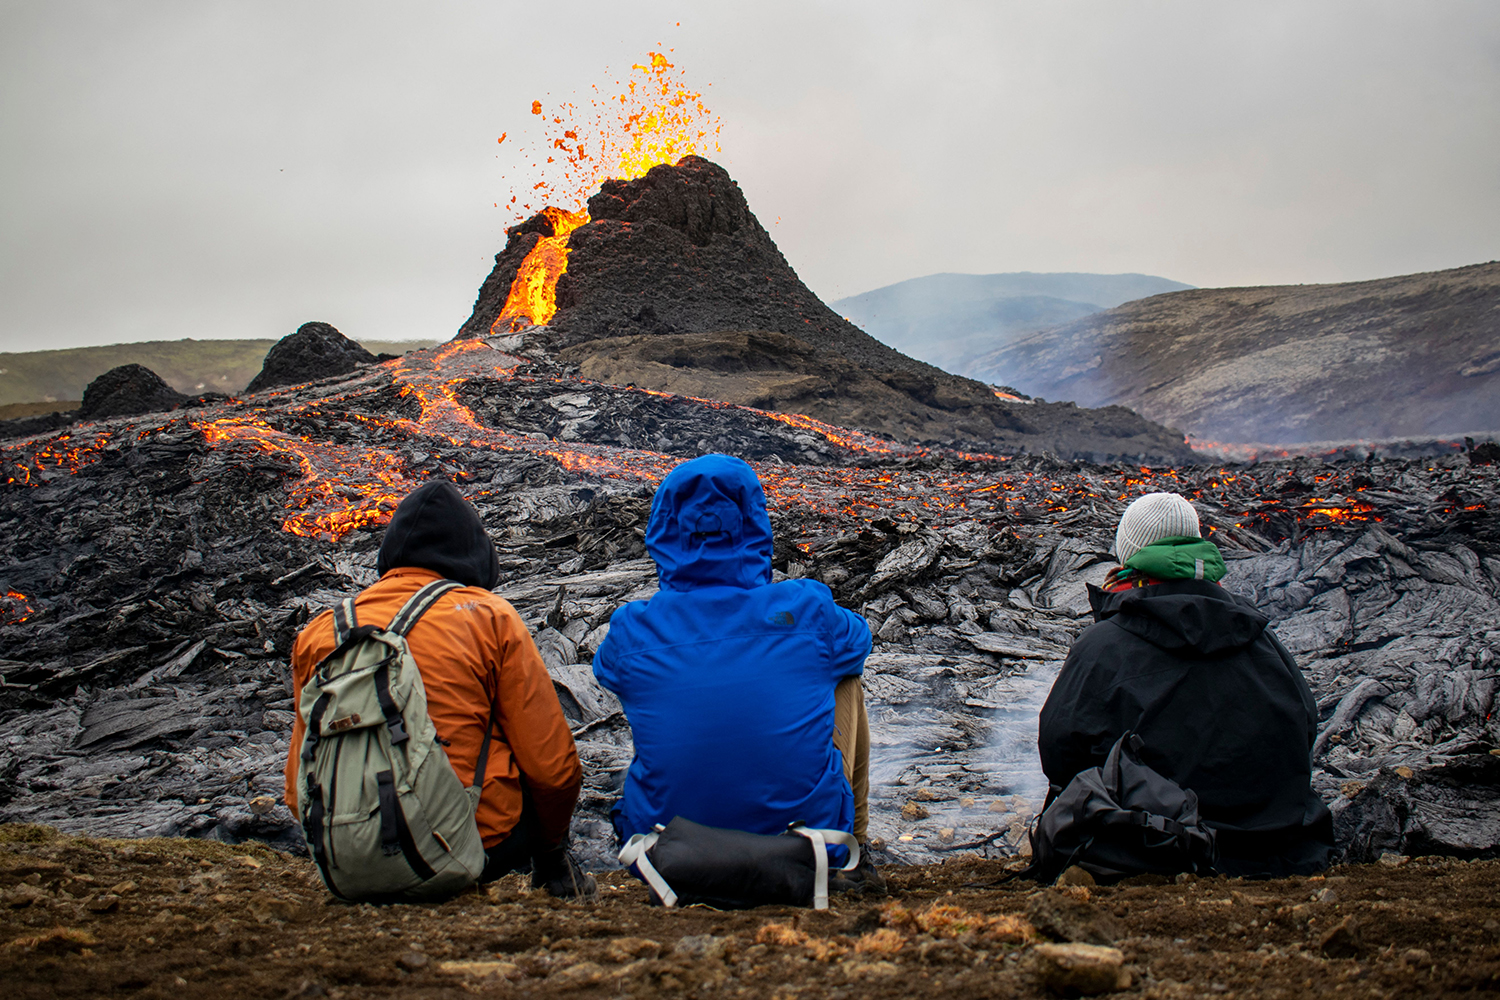 Hikers watch as lava flows from the Fagradalsfjall volcano about 25 miles west of Reykjavik, Iceland, on March 21. JEREMIE RICHARD/AFP via Getty Images